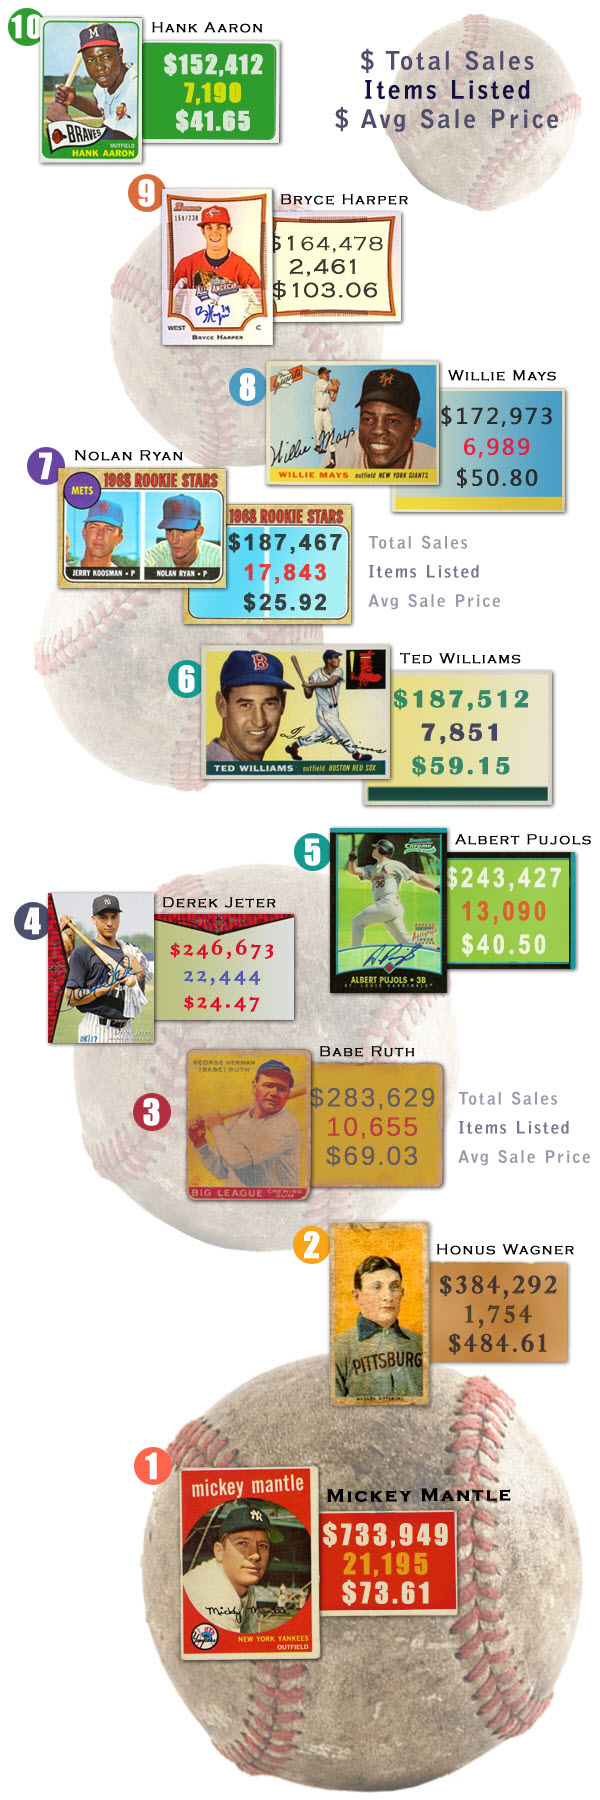 Top 10 Best Selling Baseball Players on eBay 1